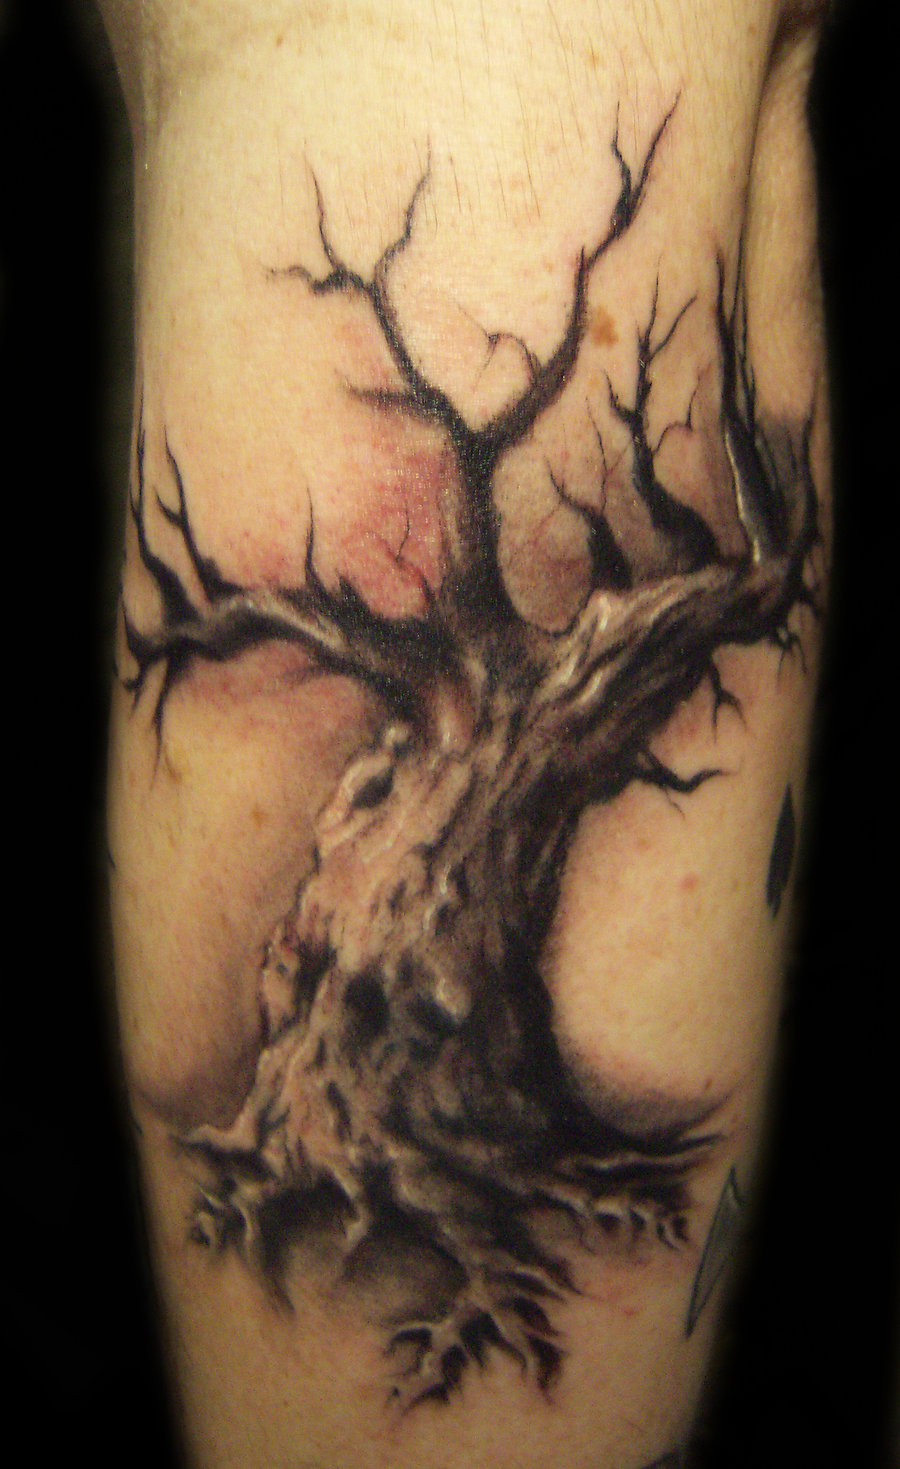 Dead tree tattoos designs ideas and meaning tattoos for you for Tattoo ideas and meanings